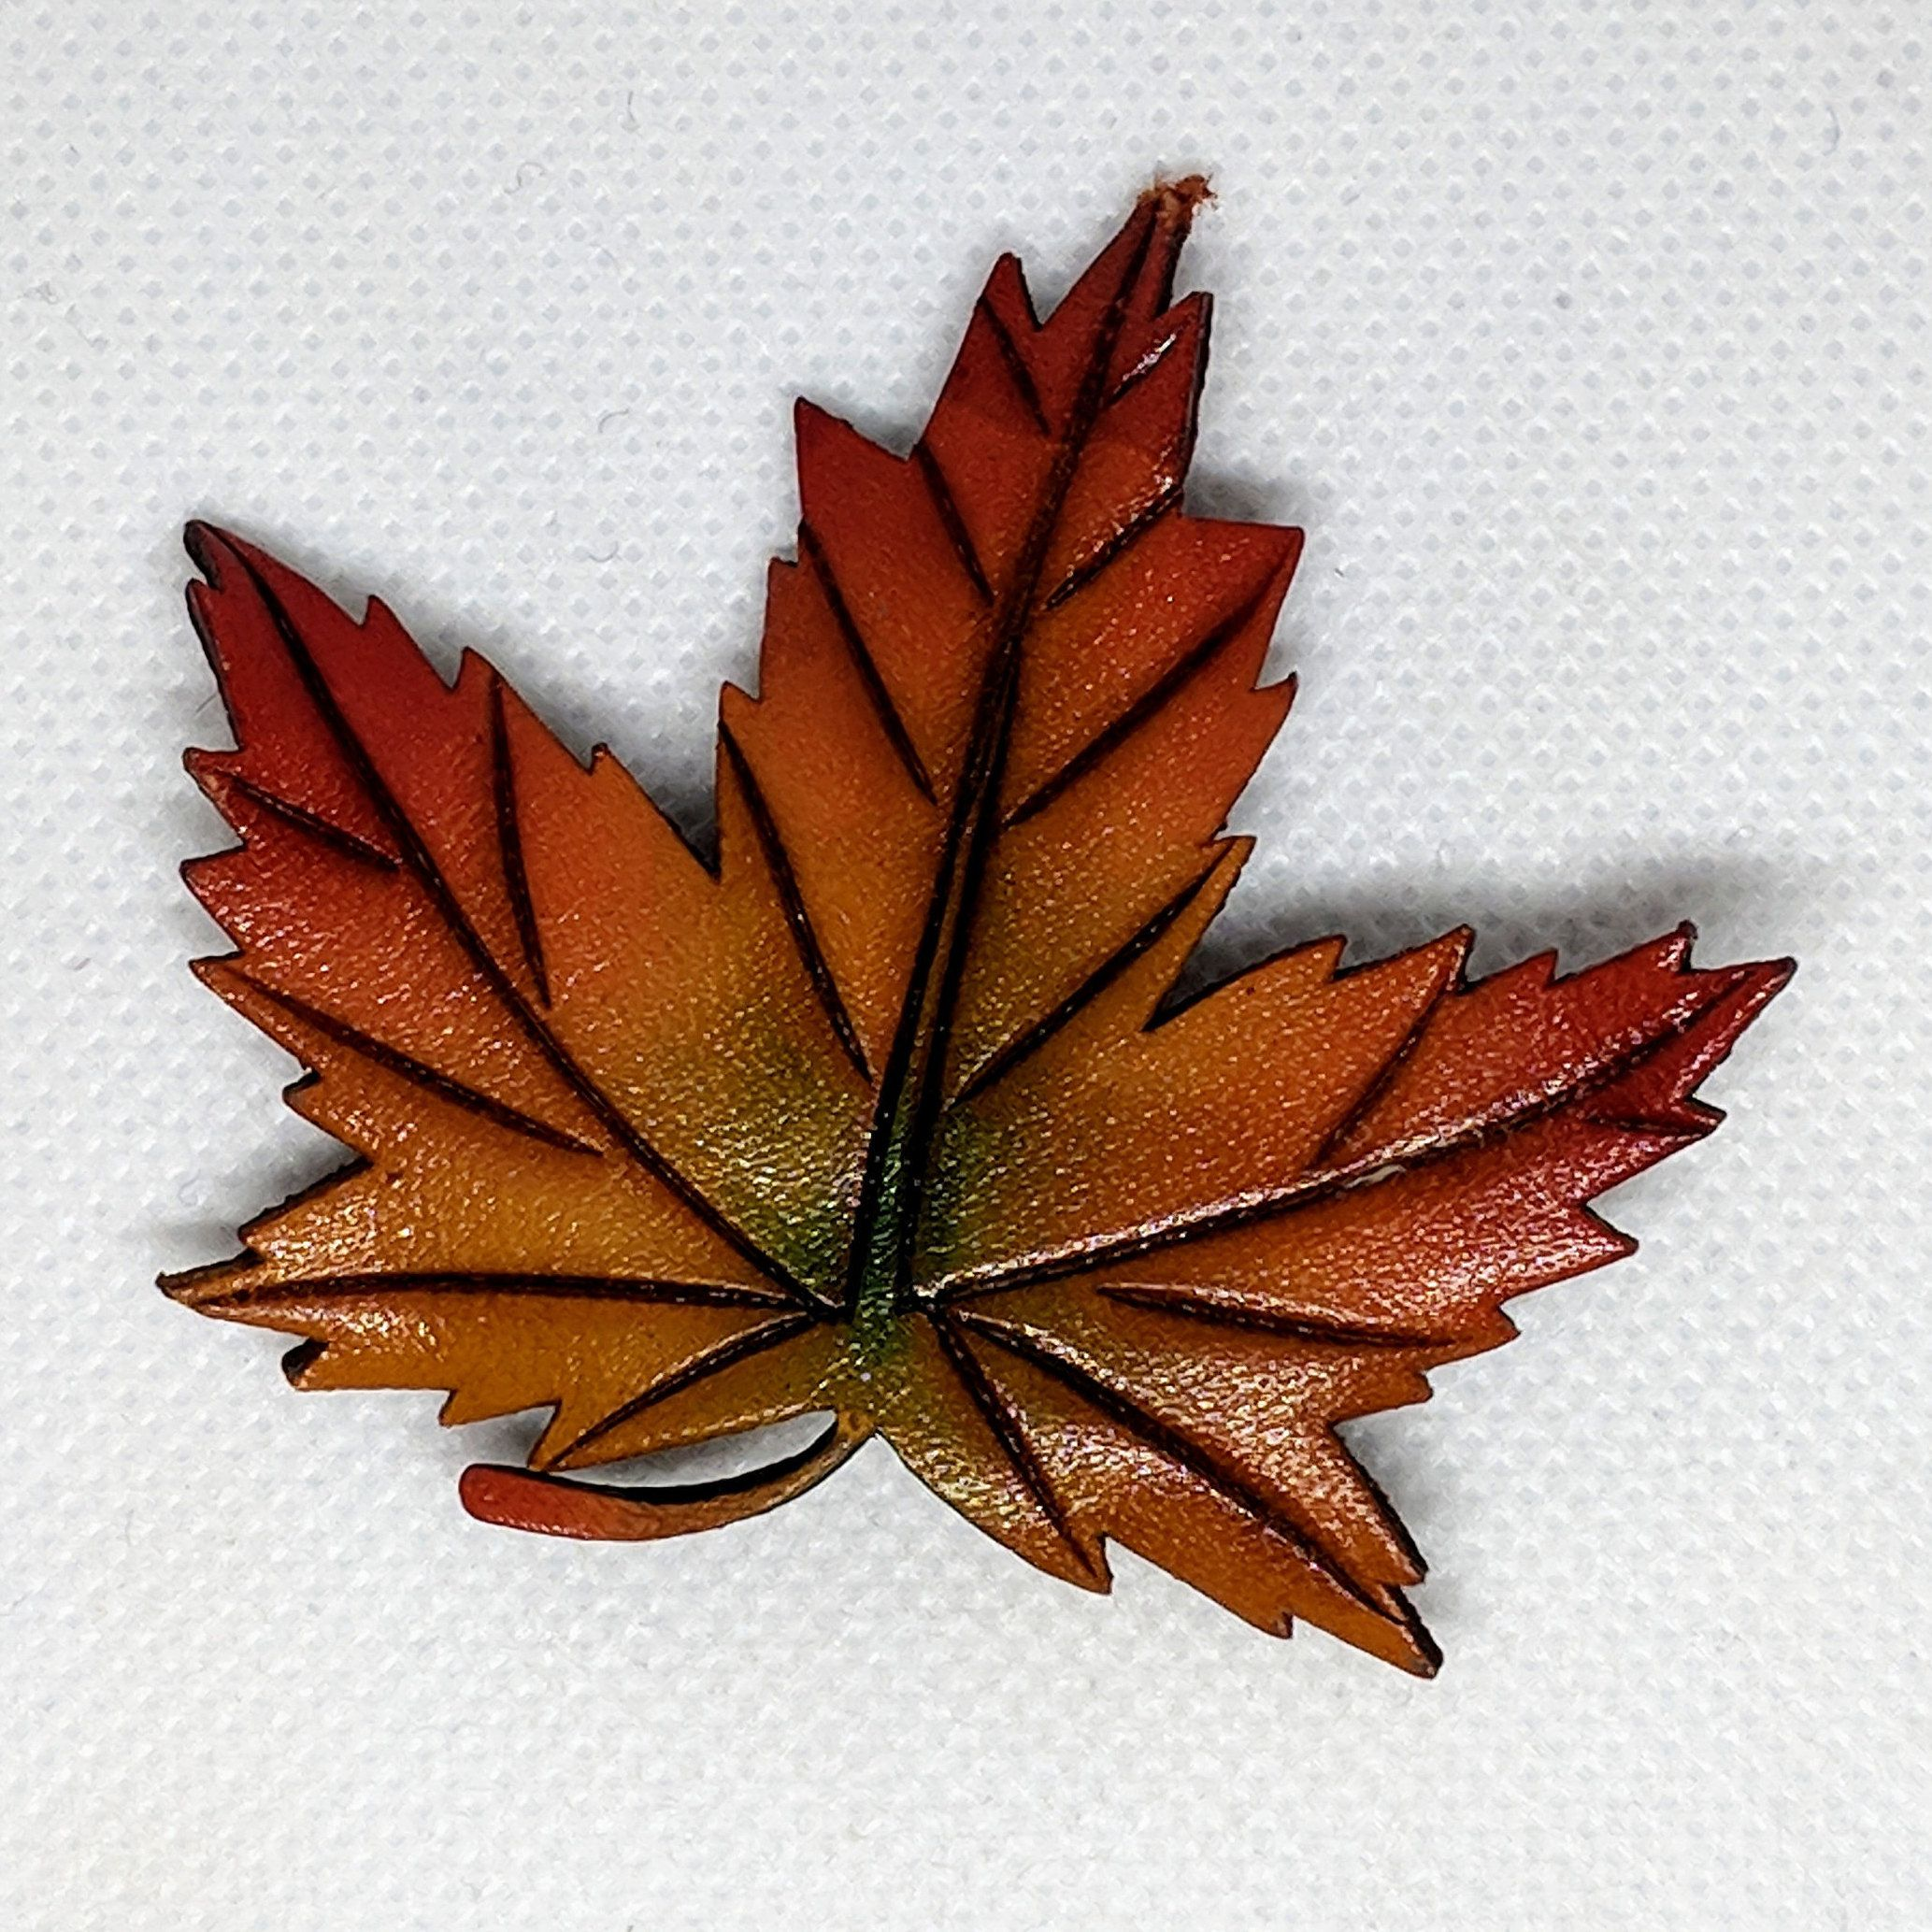 ab67f8006 Maple Leaf Brooch in Fall Autumn Colors Leather Pin Signed MA and Canada  Canadian Jewelry Thanksgiving Brown Orange Red Yellow Green by  InheritedTaste on ...